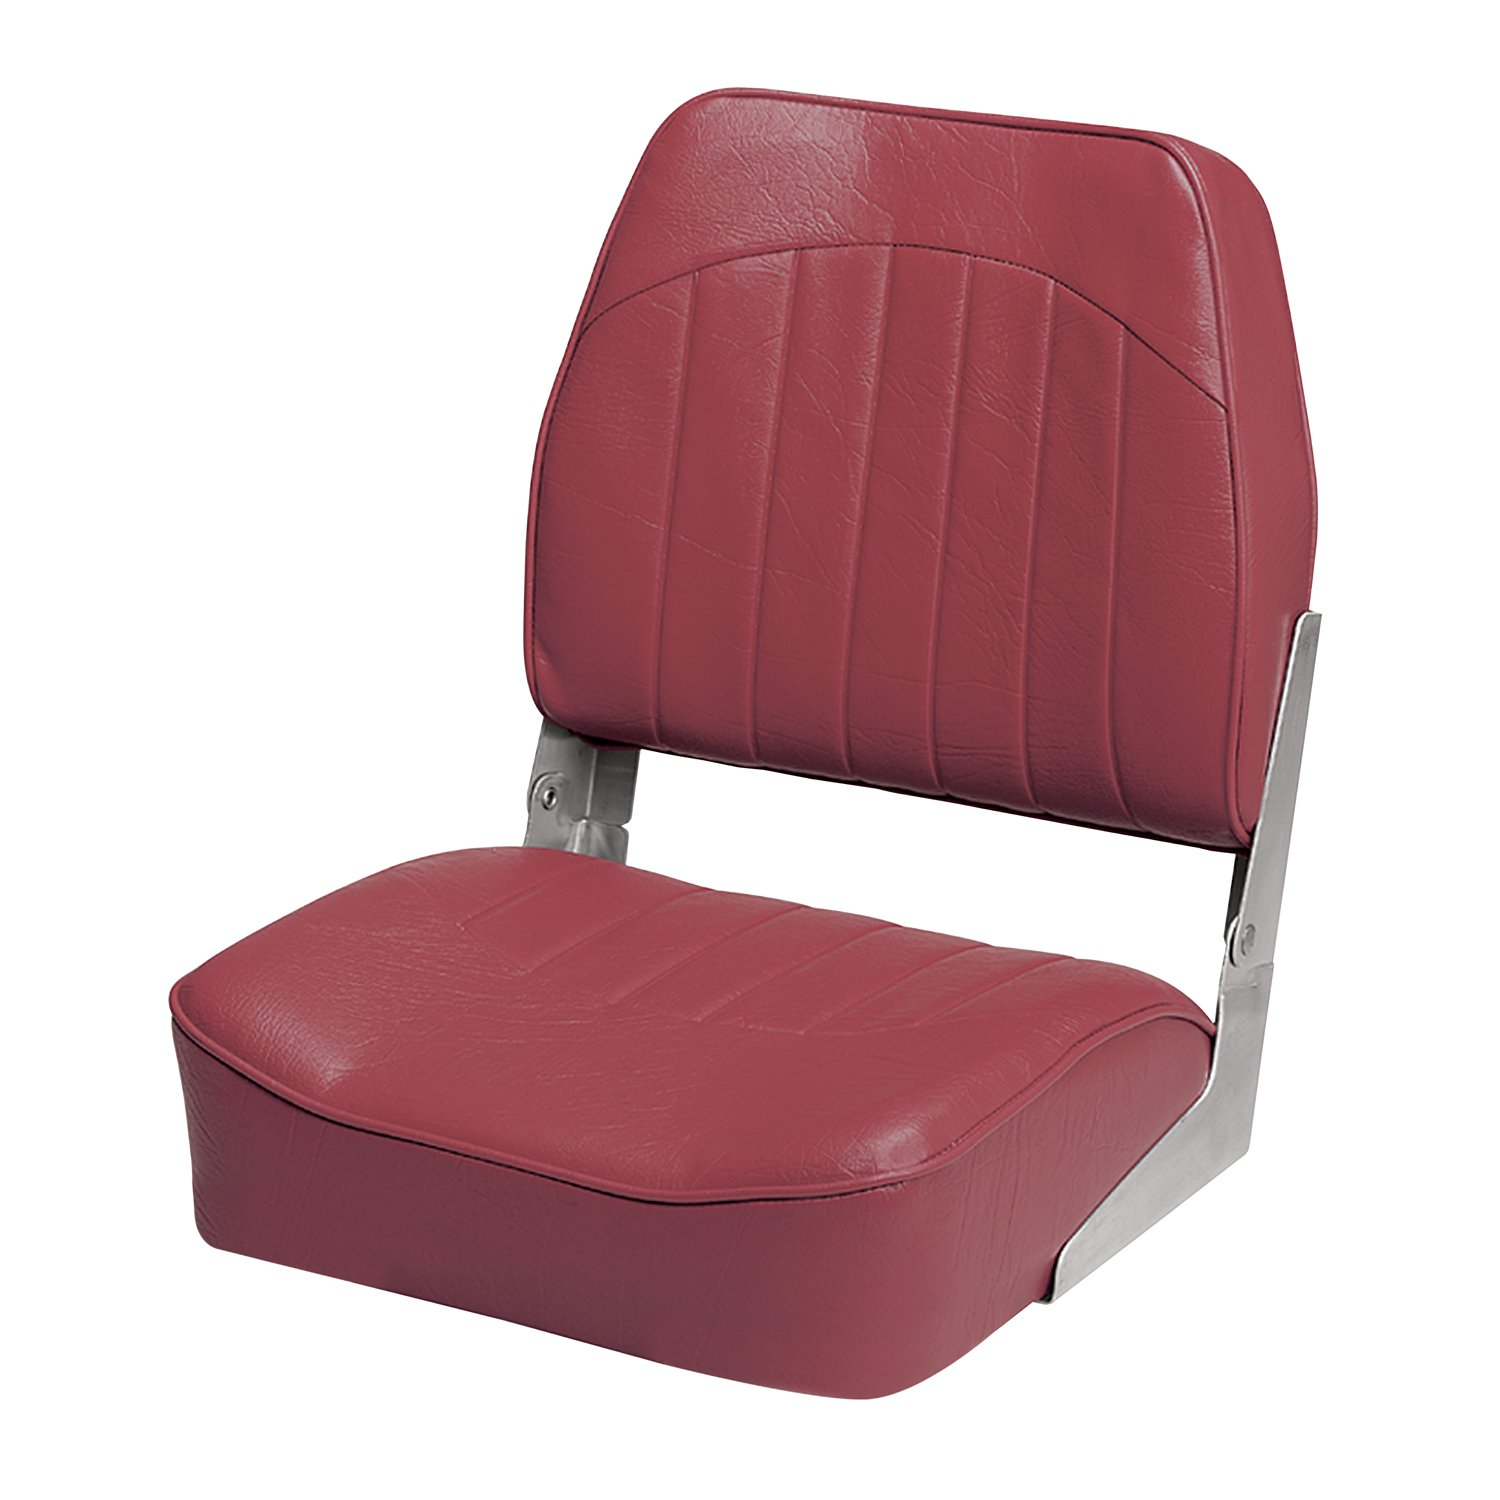 Wise 8WD734PLS-712 Low Back Boat Seat, Red by Wise